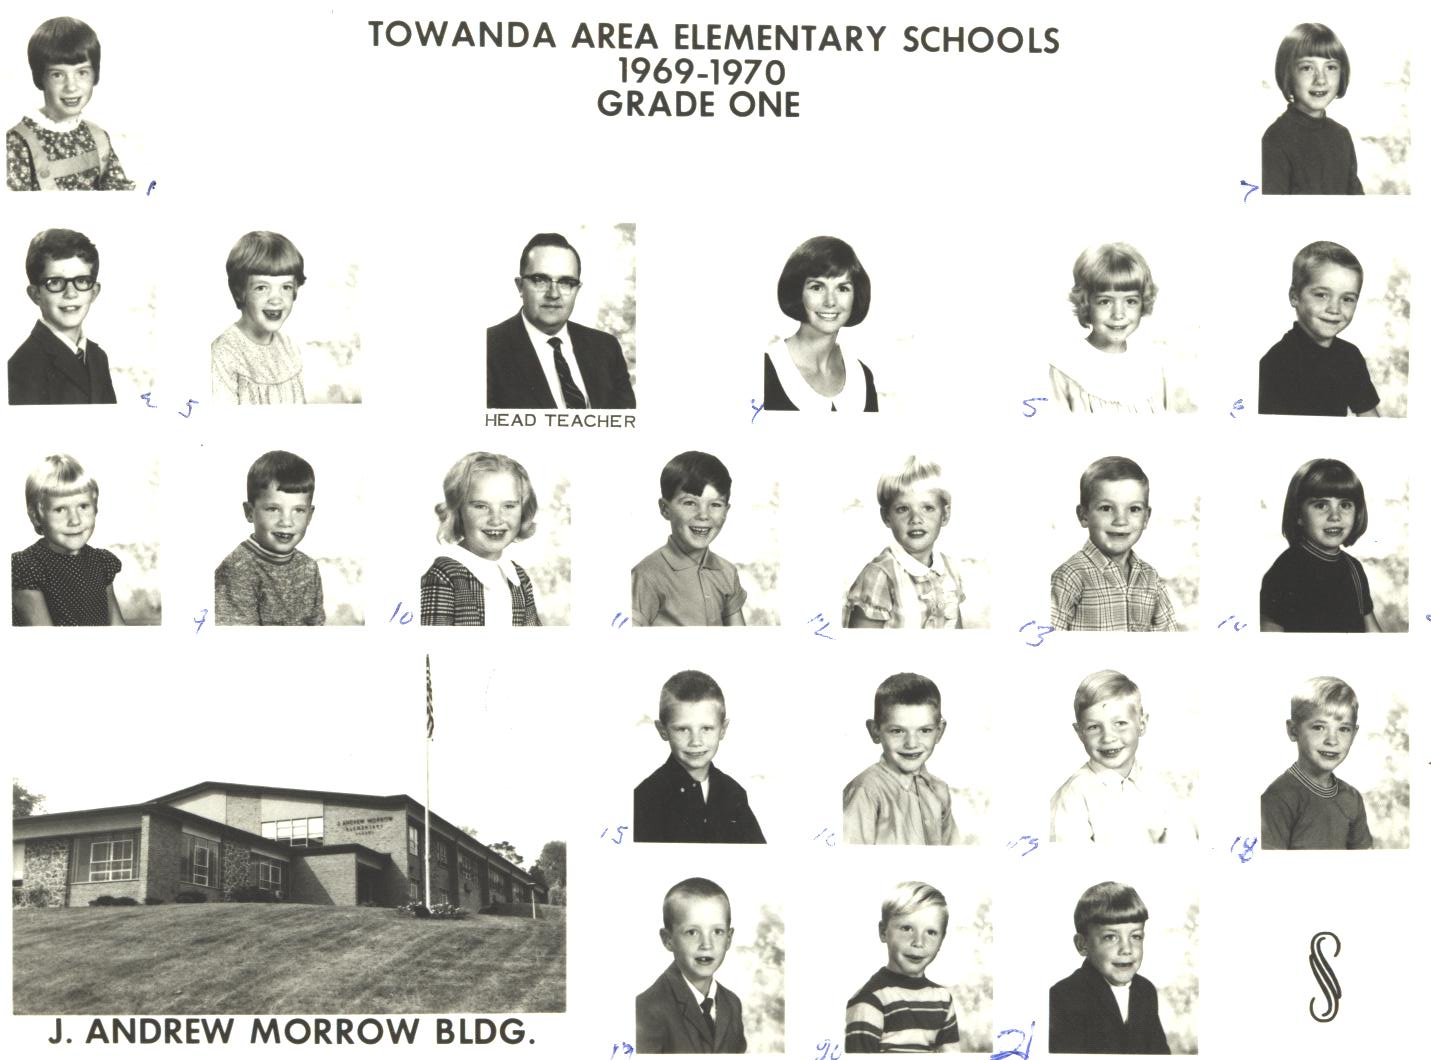 jamorrow_1stgrade_1969.jpg